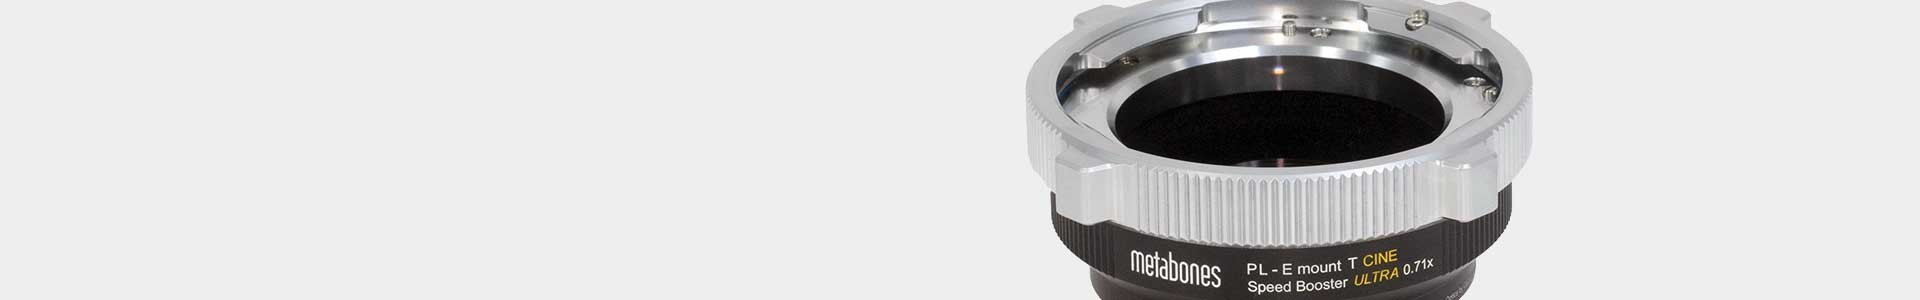 Mount Adapters for any video or photo camera - Avacab